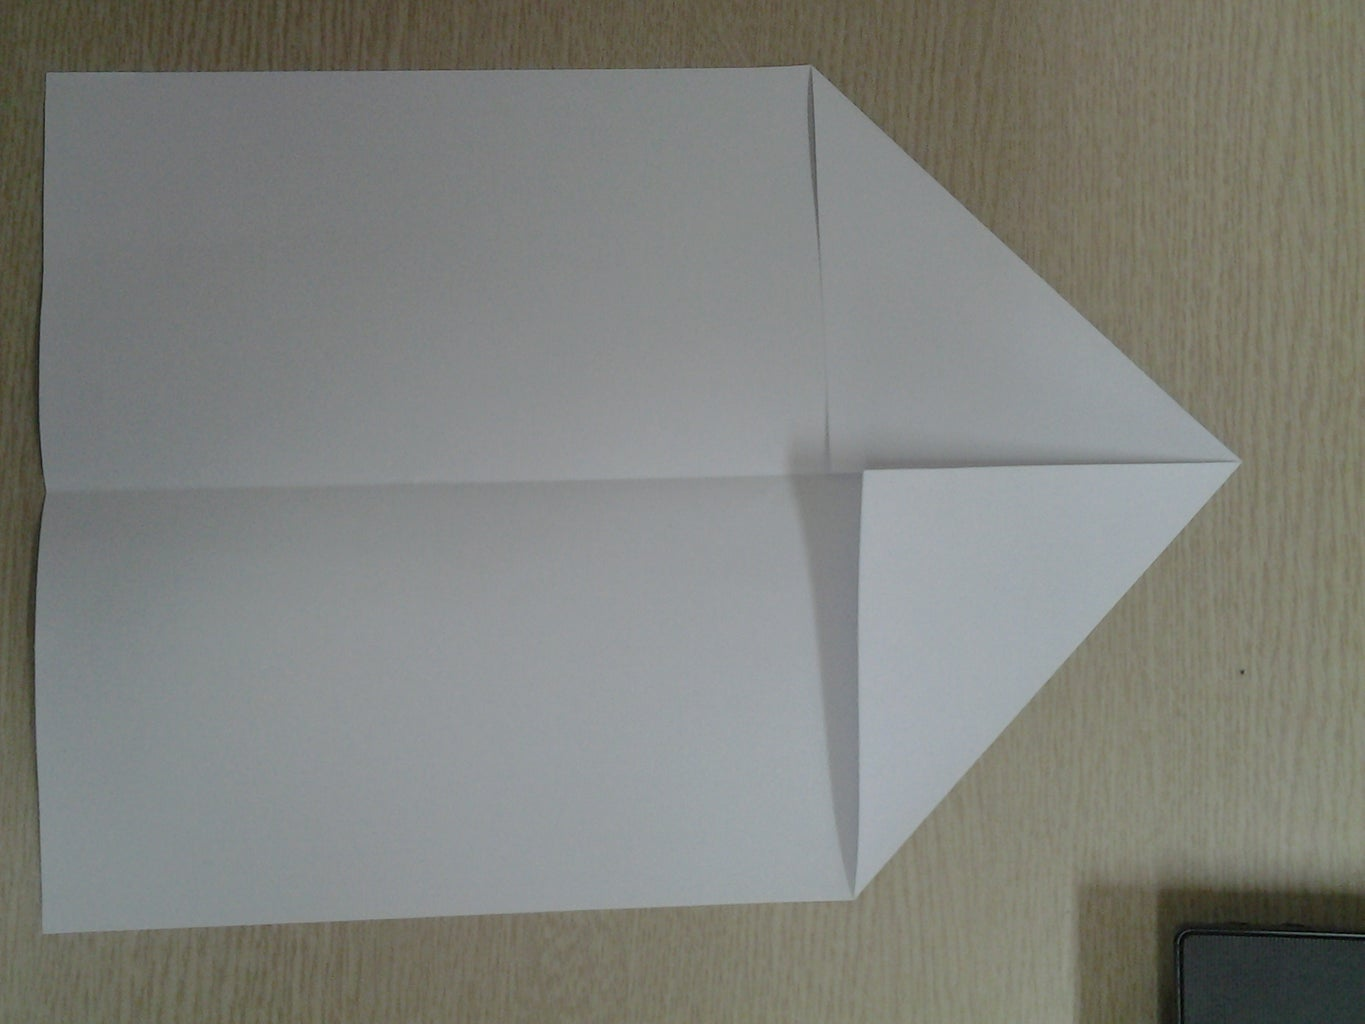 Fold the Paper So the Top Edge of the Paper Touches the Center Line.